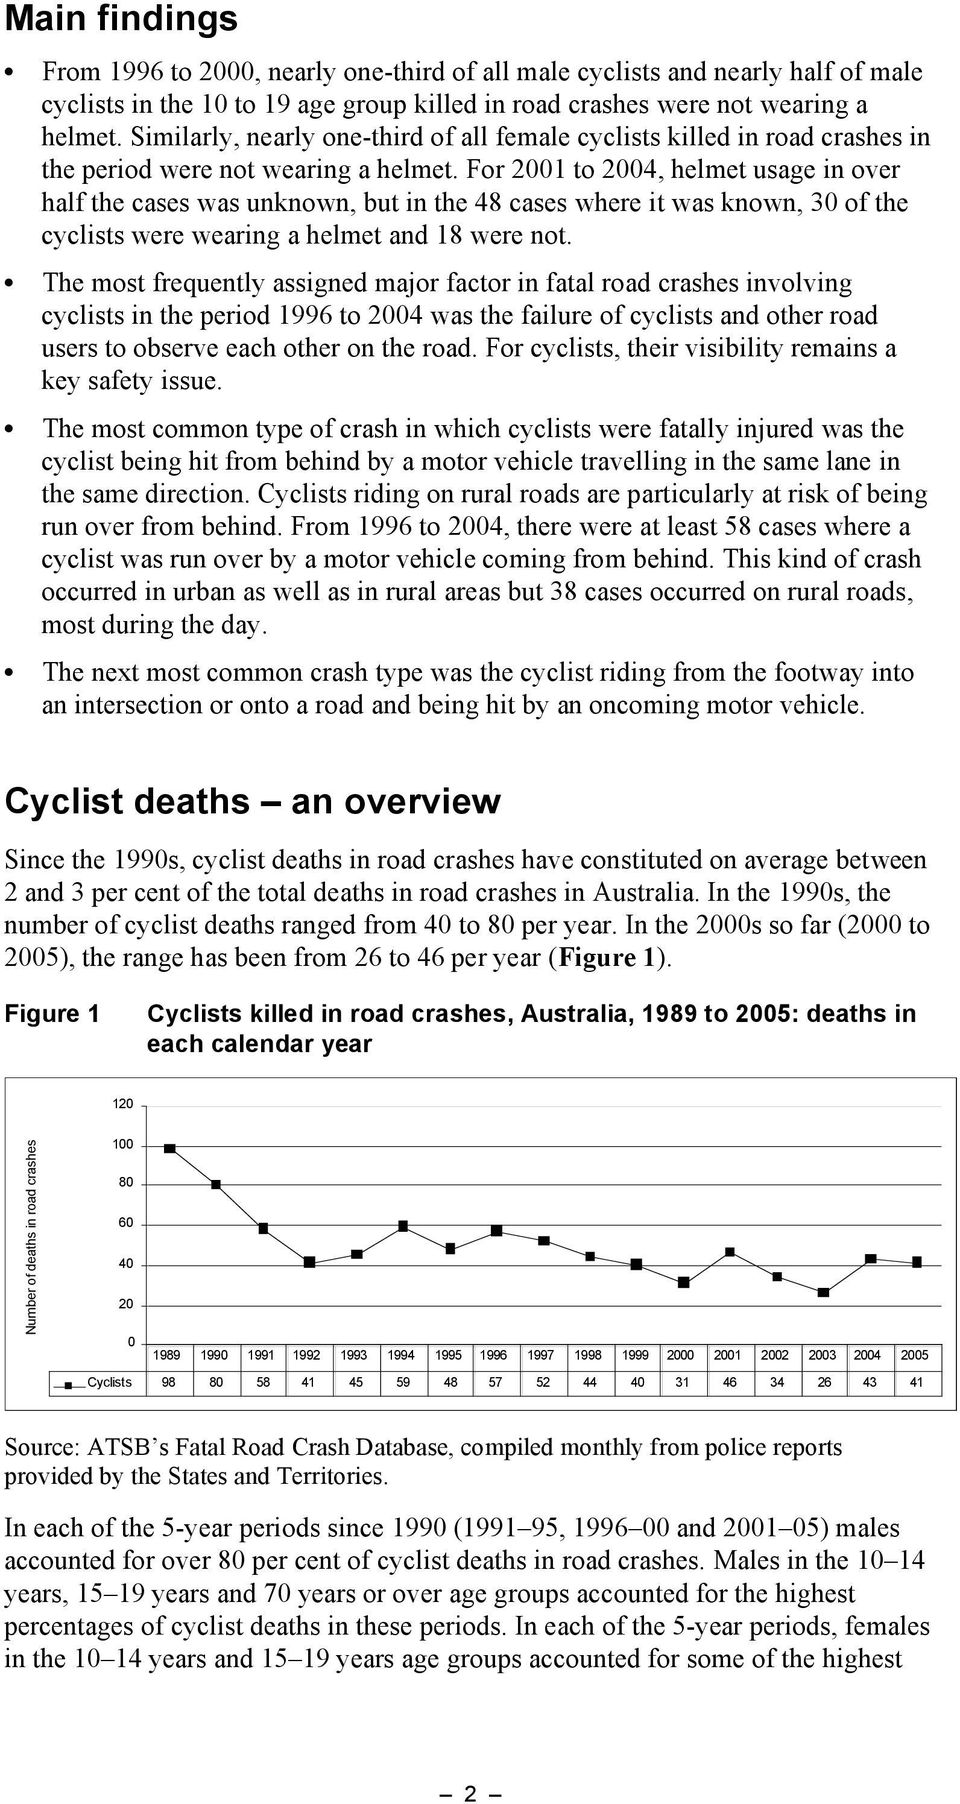 For 2001 to 2004, helmet usage in over half the cases was unknown, but in the 48 cases where it was known, 30 of the cyclists were wearing a helmet and 18 were not.